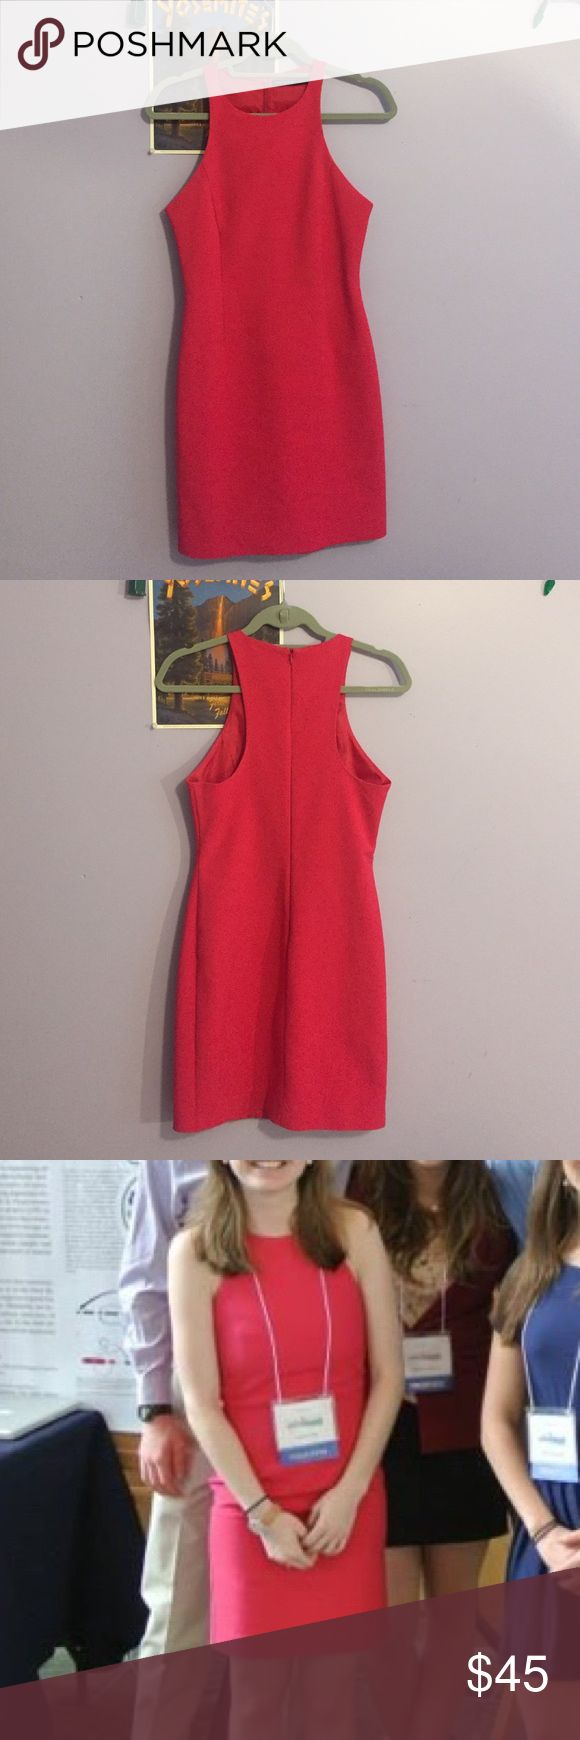 """Pink Zara Racerback Dress Fantastic all-around dress! Got a little too small for me so I am passing it along to someone who can use it. Hits right above the knee on me (I'm 5'3""""). Only worn on a few occasions and is in great shape Zara Dresses"""